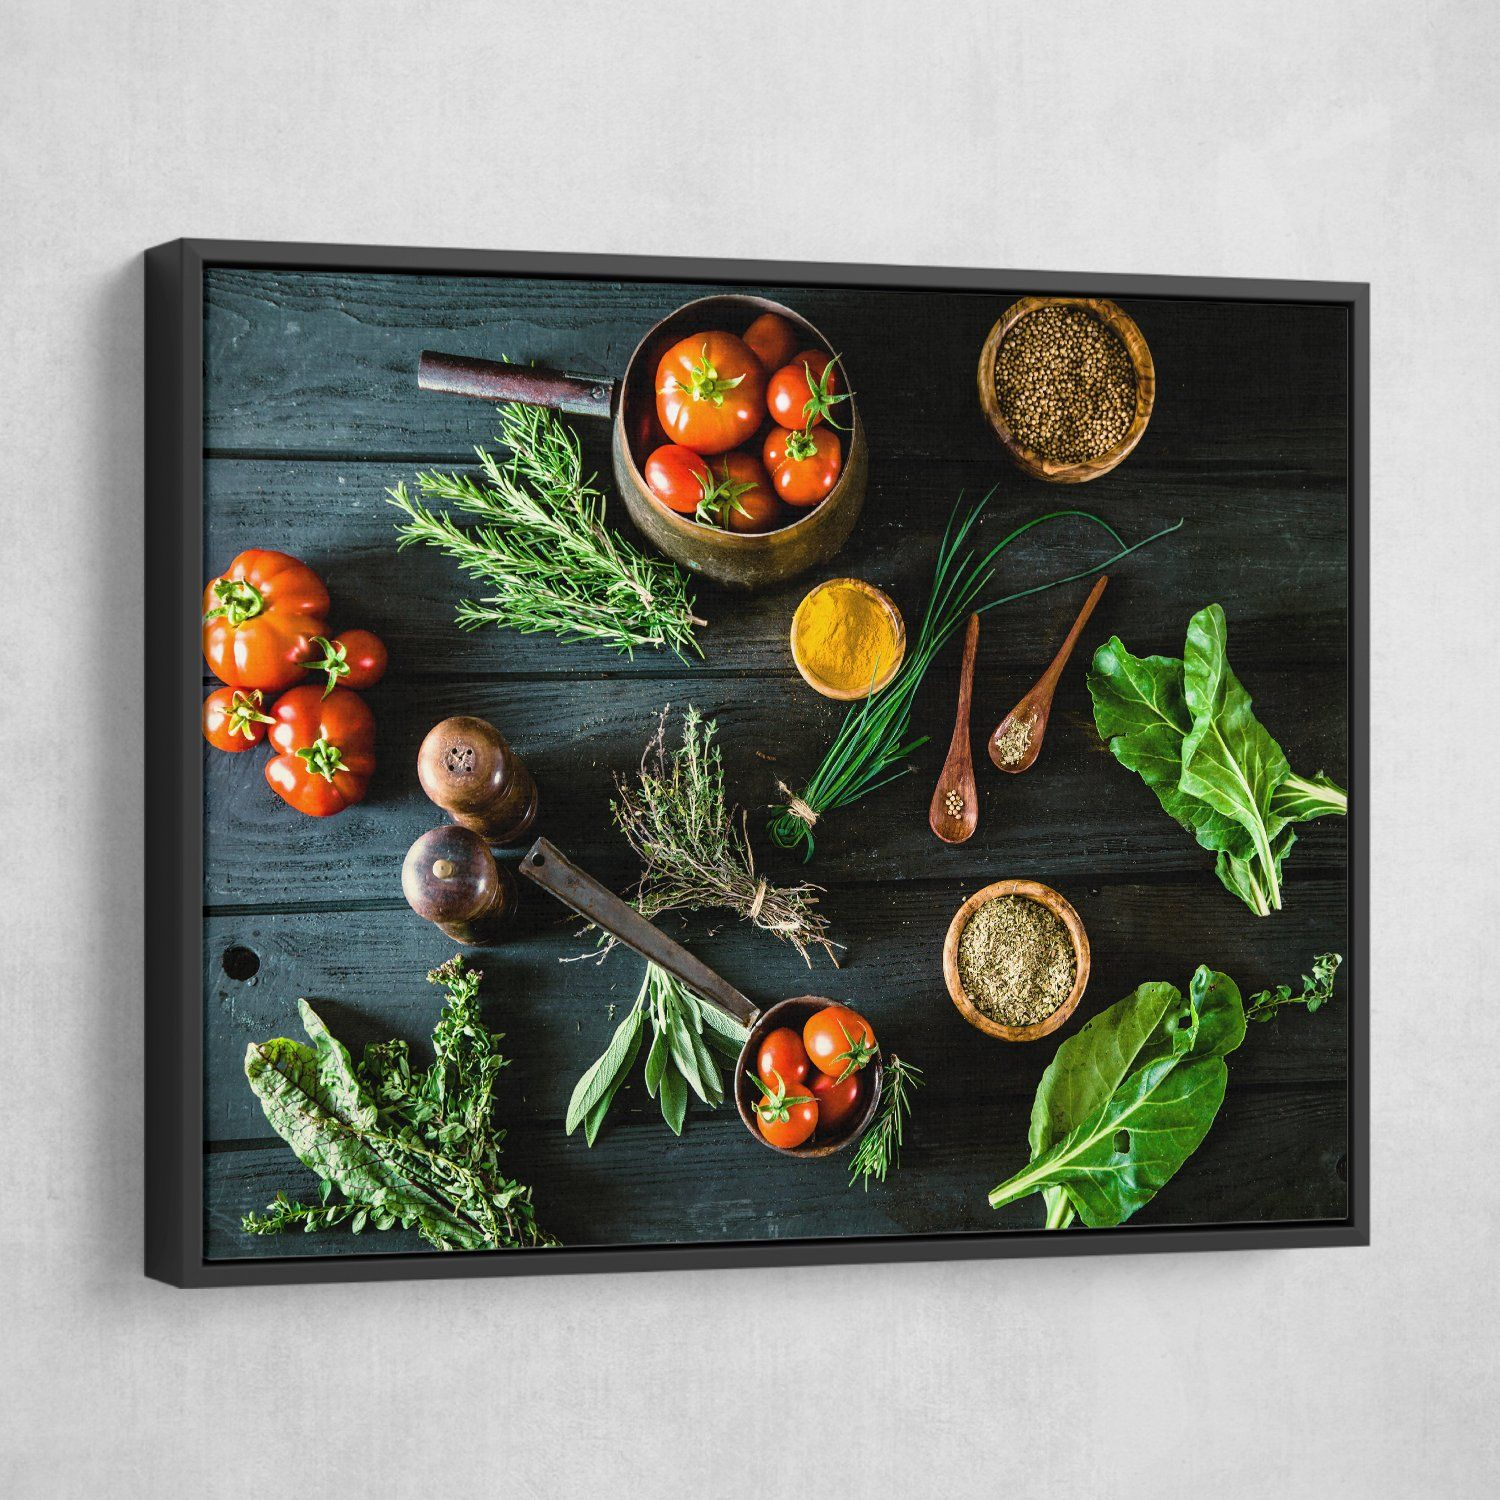 Bio Healthy Food wall art black frame